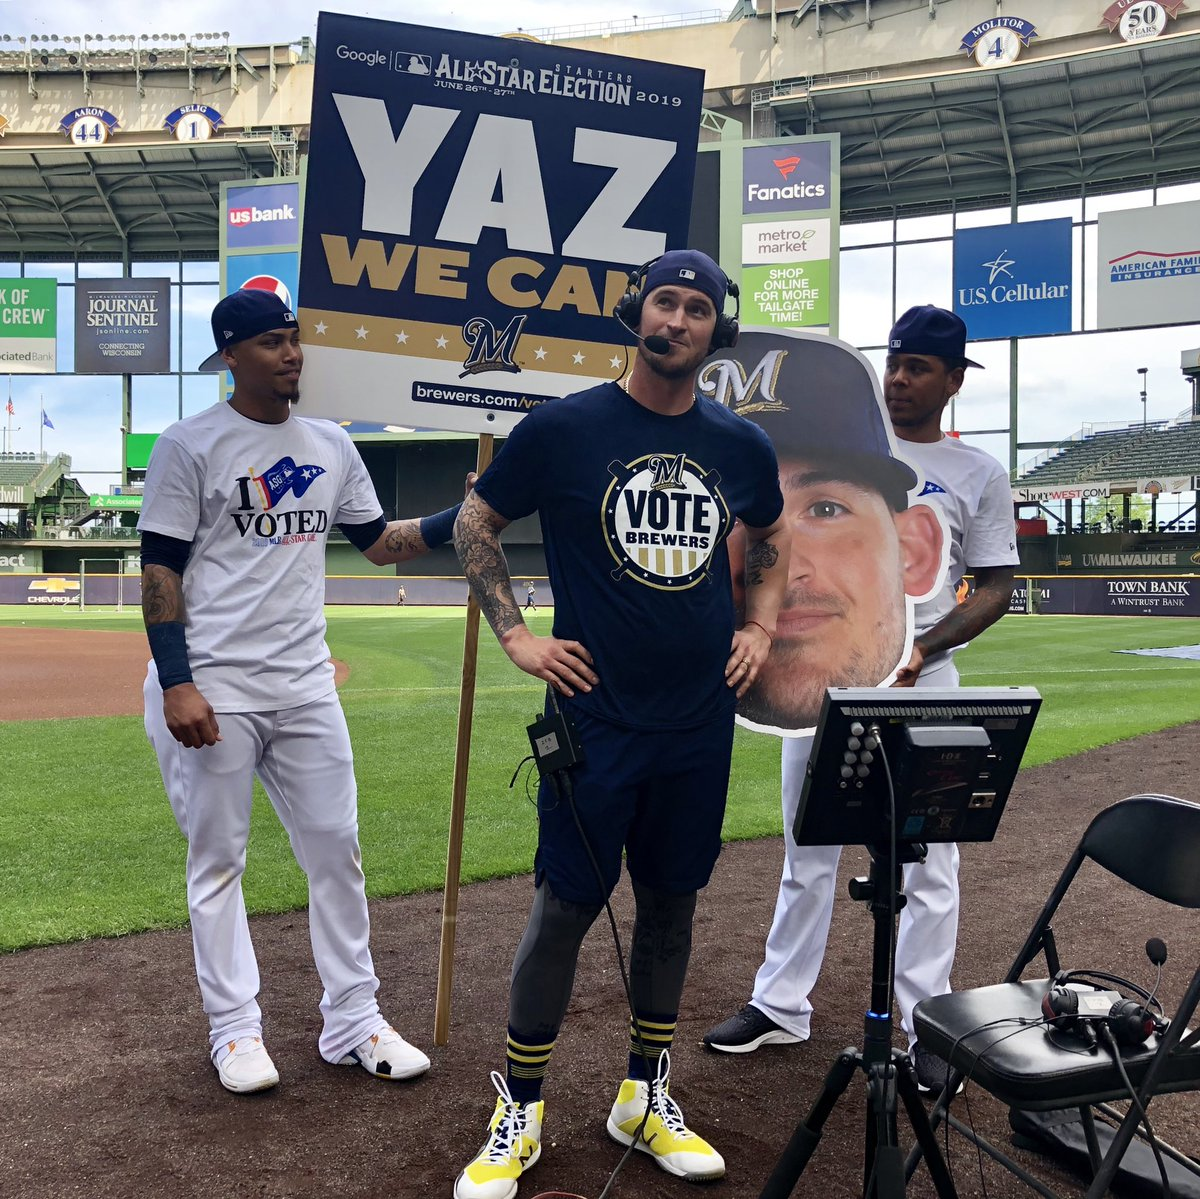 Coming up today on @IntentionalTalk, All-Star Starters Election candidate @YazmanianDVL08 joins @Dempster46 and @HeidiWatney. Show airs at 4:40pm CT on @MLBNetwork. Tune in! ⚾️📺 #VoteBrewers #YazWeCan